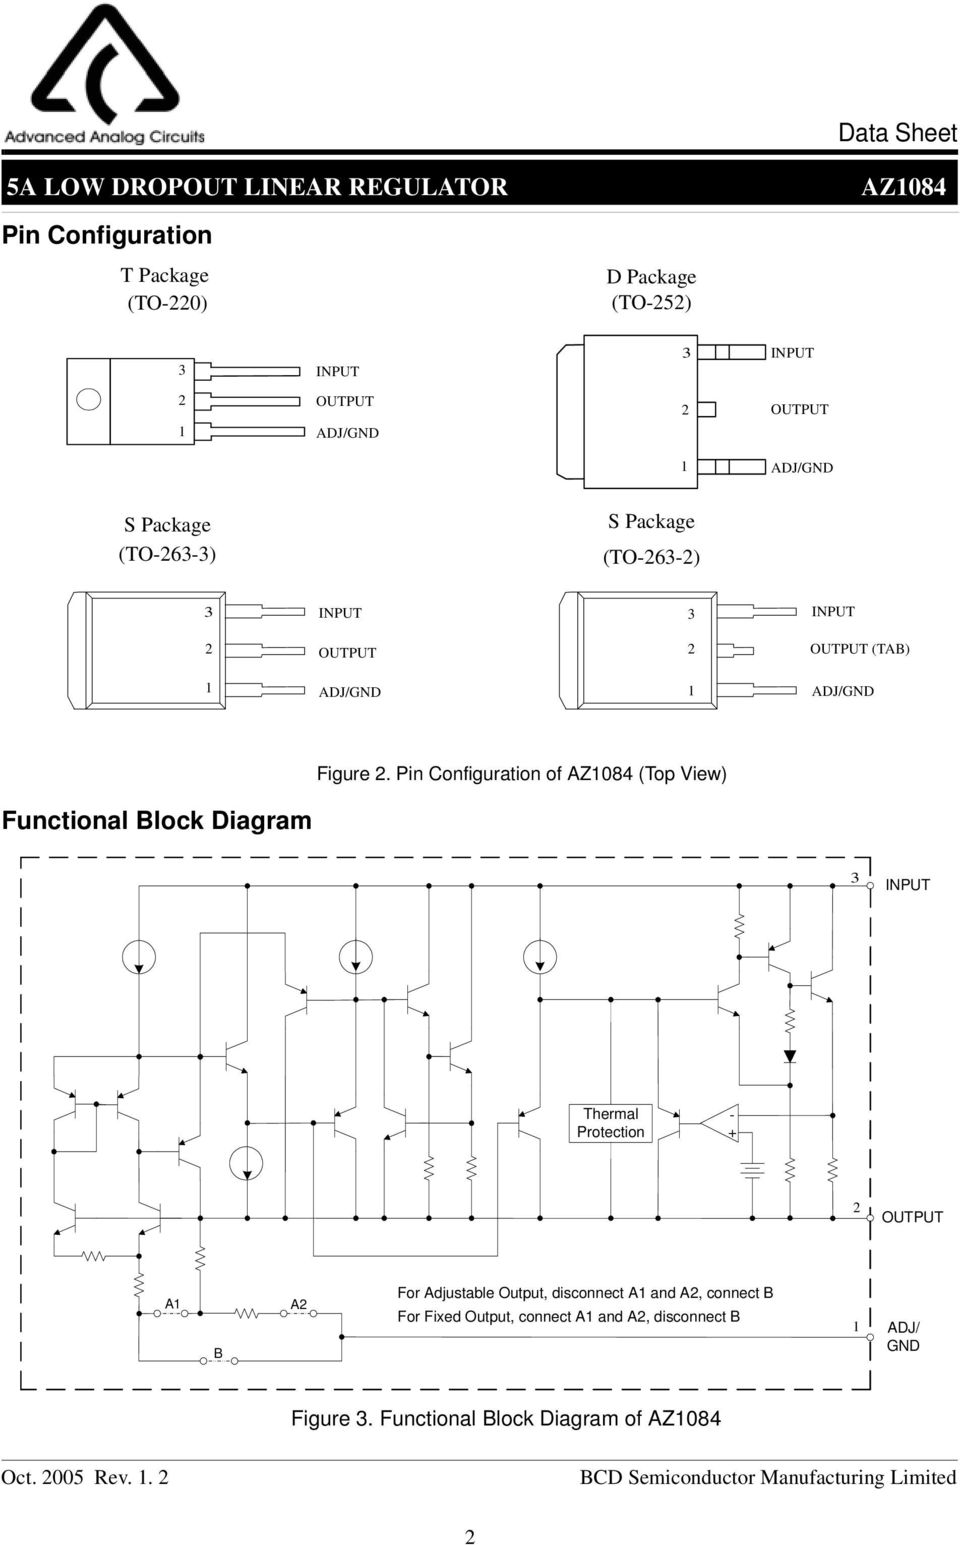 Pin Configuration of (Top View) Functional Block Diagram INPUT Thermal - Protection + 2 OUTPUT A B A2 For